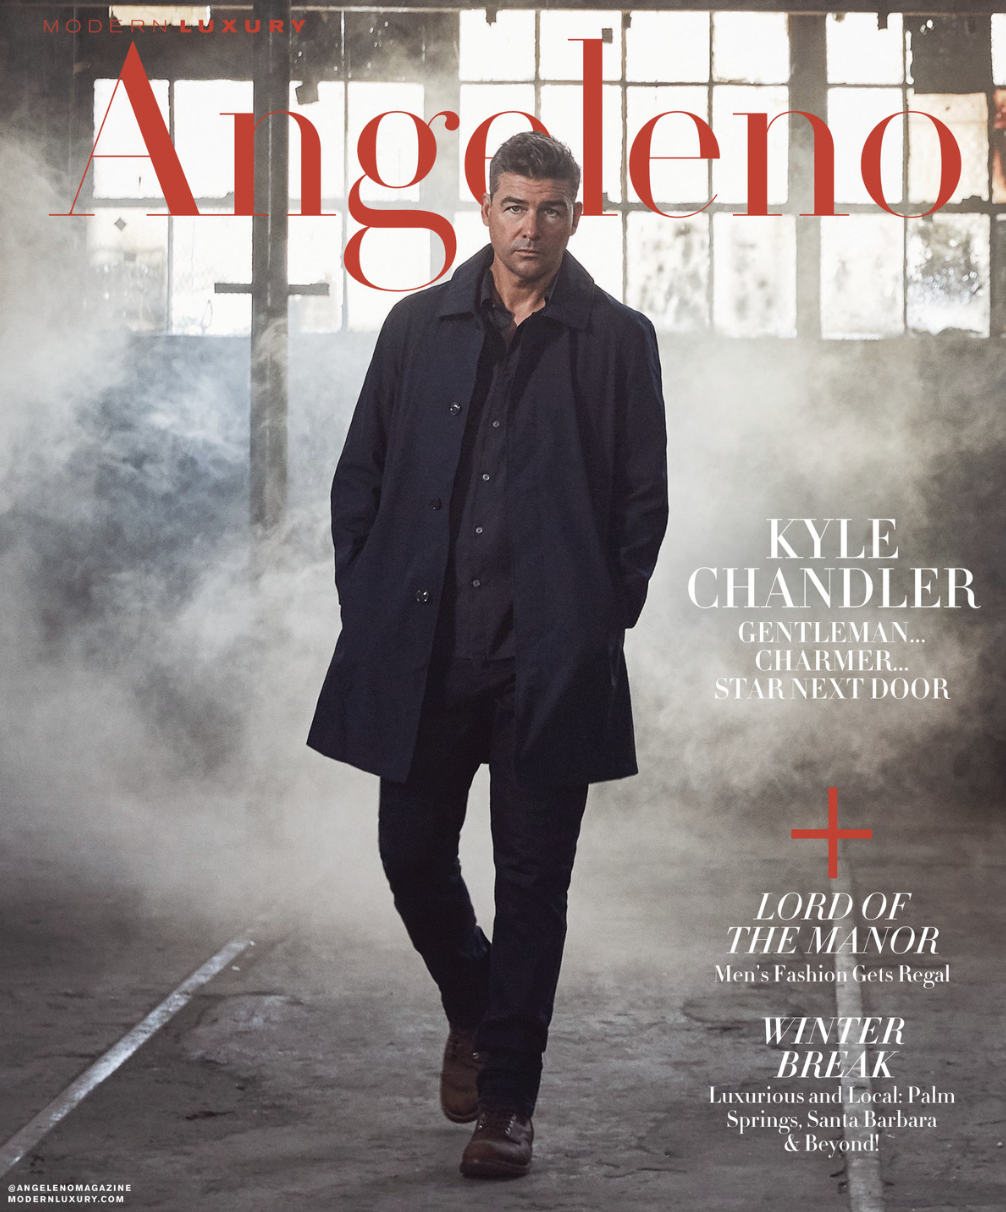 Modern Luxury Cover - Angeleno.png